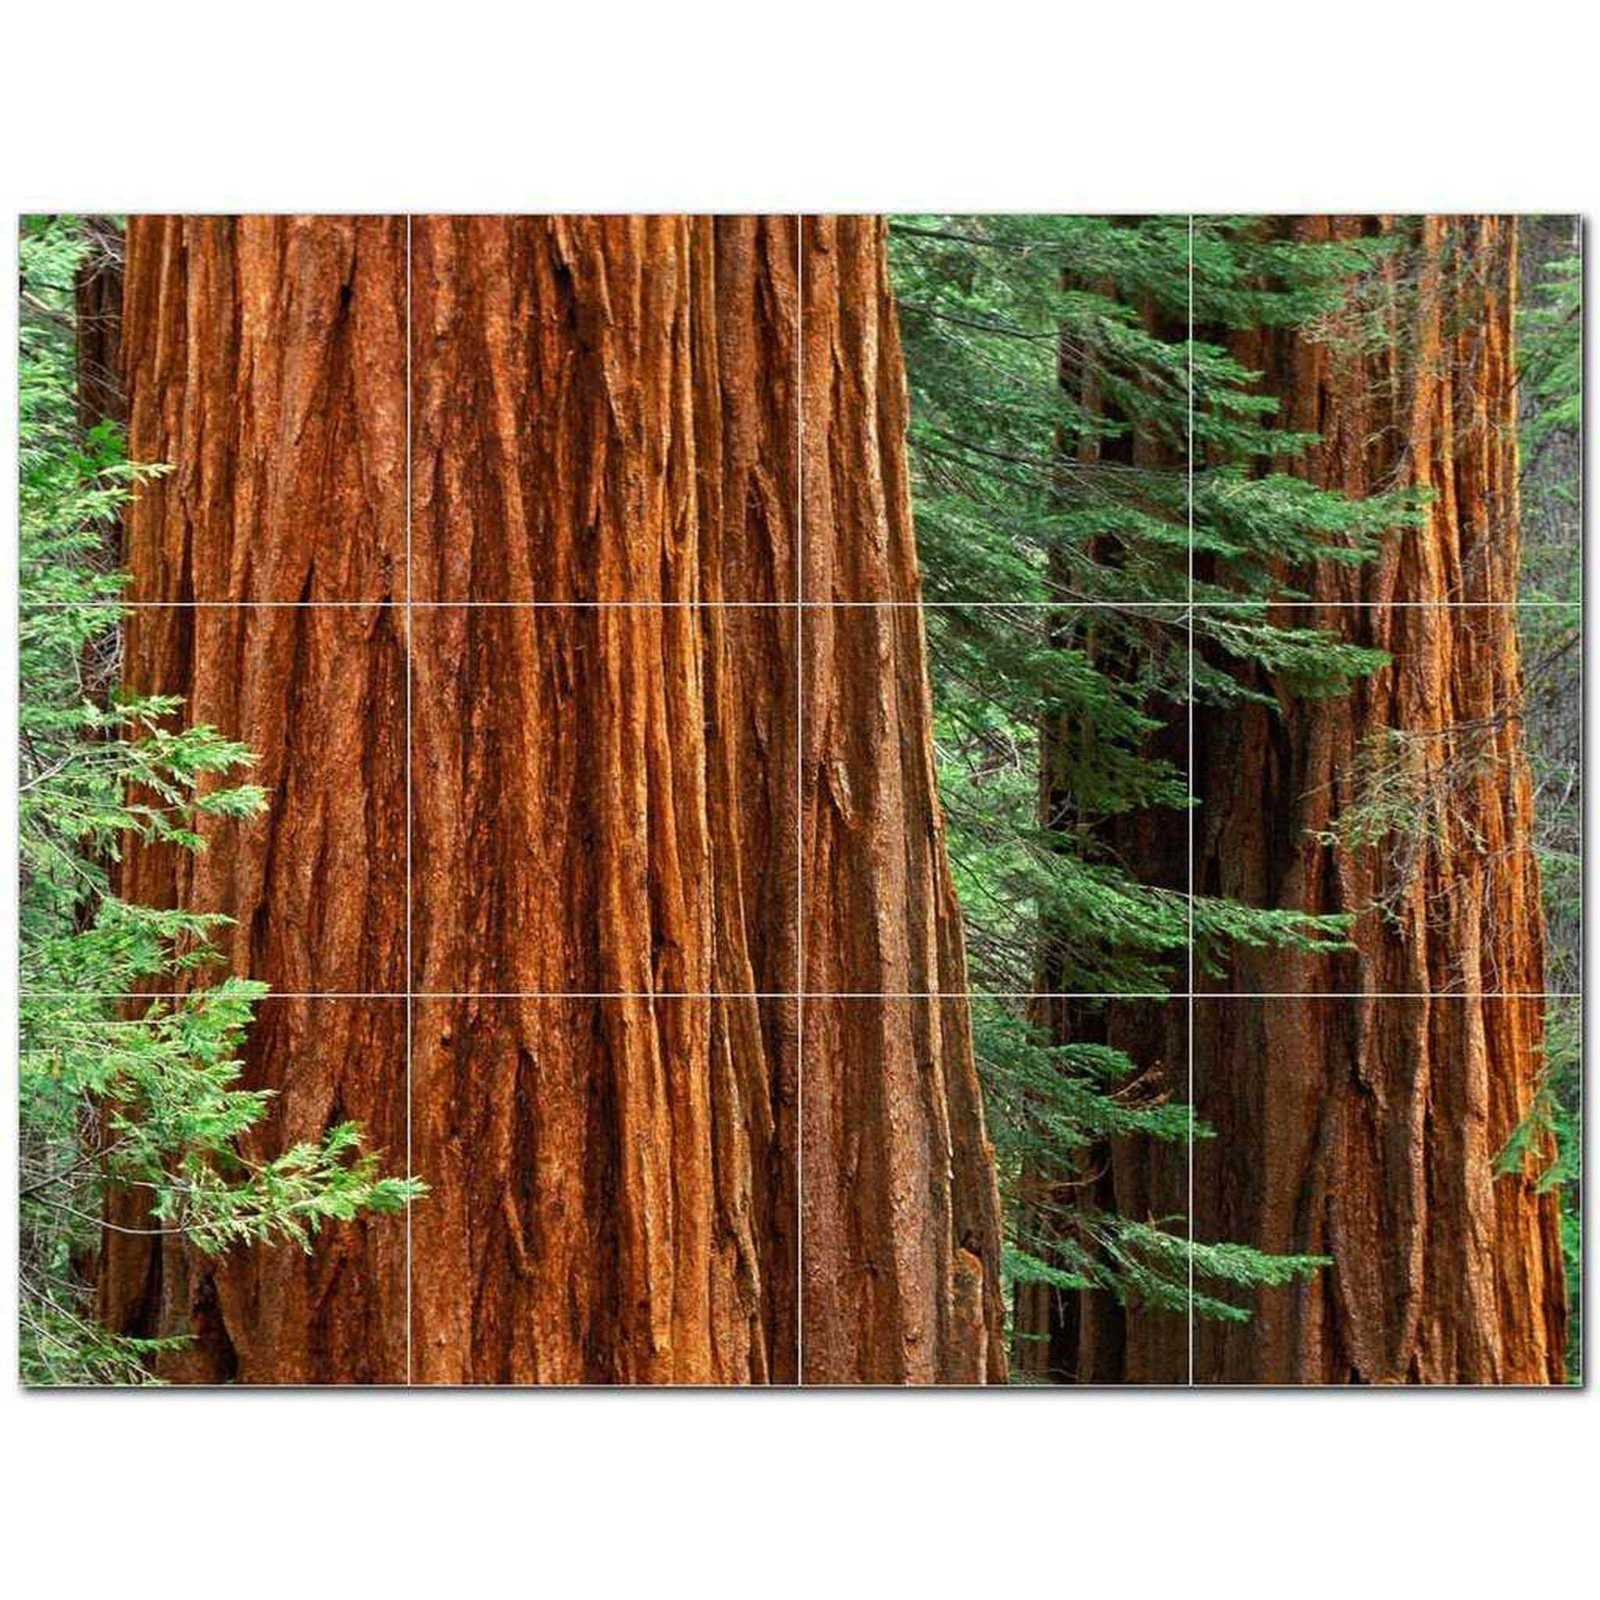 Primary image for Trees Leaves Ceramic Tile Mural Kitchen Backsplash Bathroom Shower BAZ406012